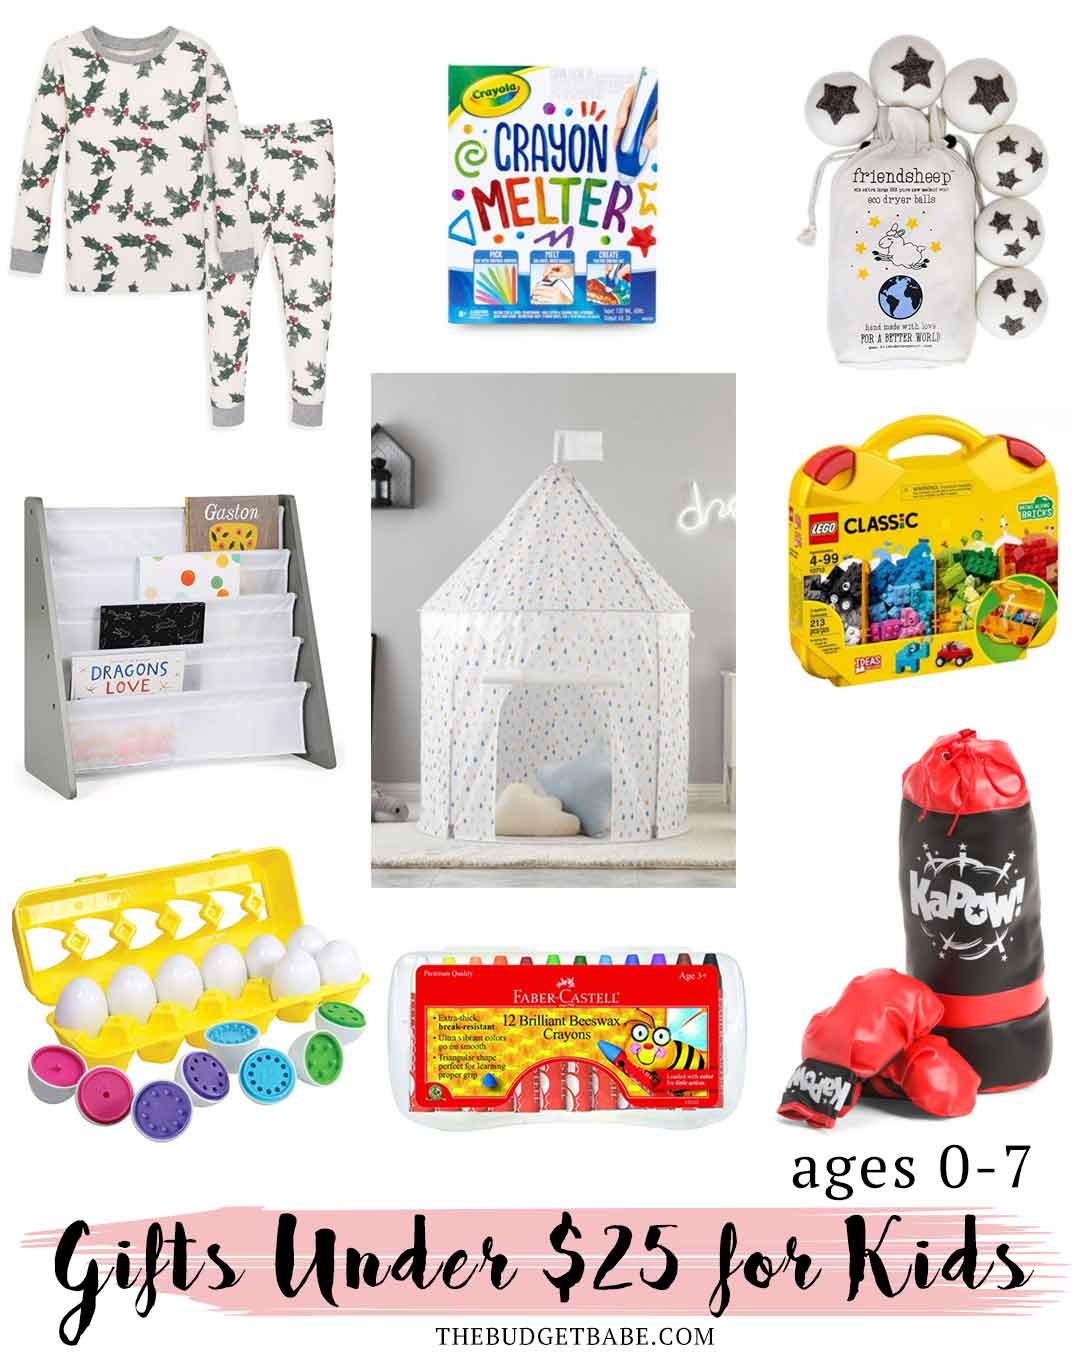 Christmas gift ideas for young kids they'll love! Under $25!